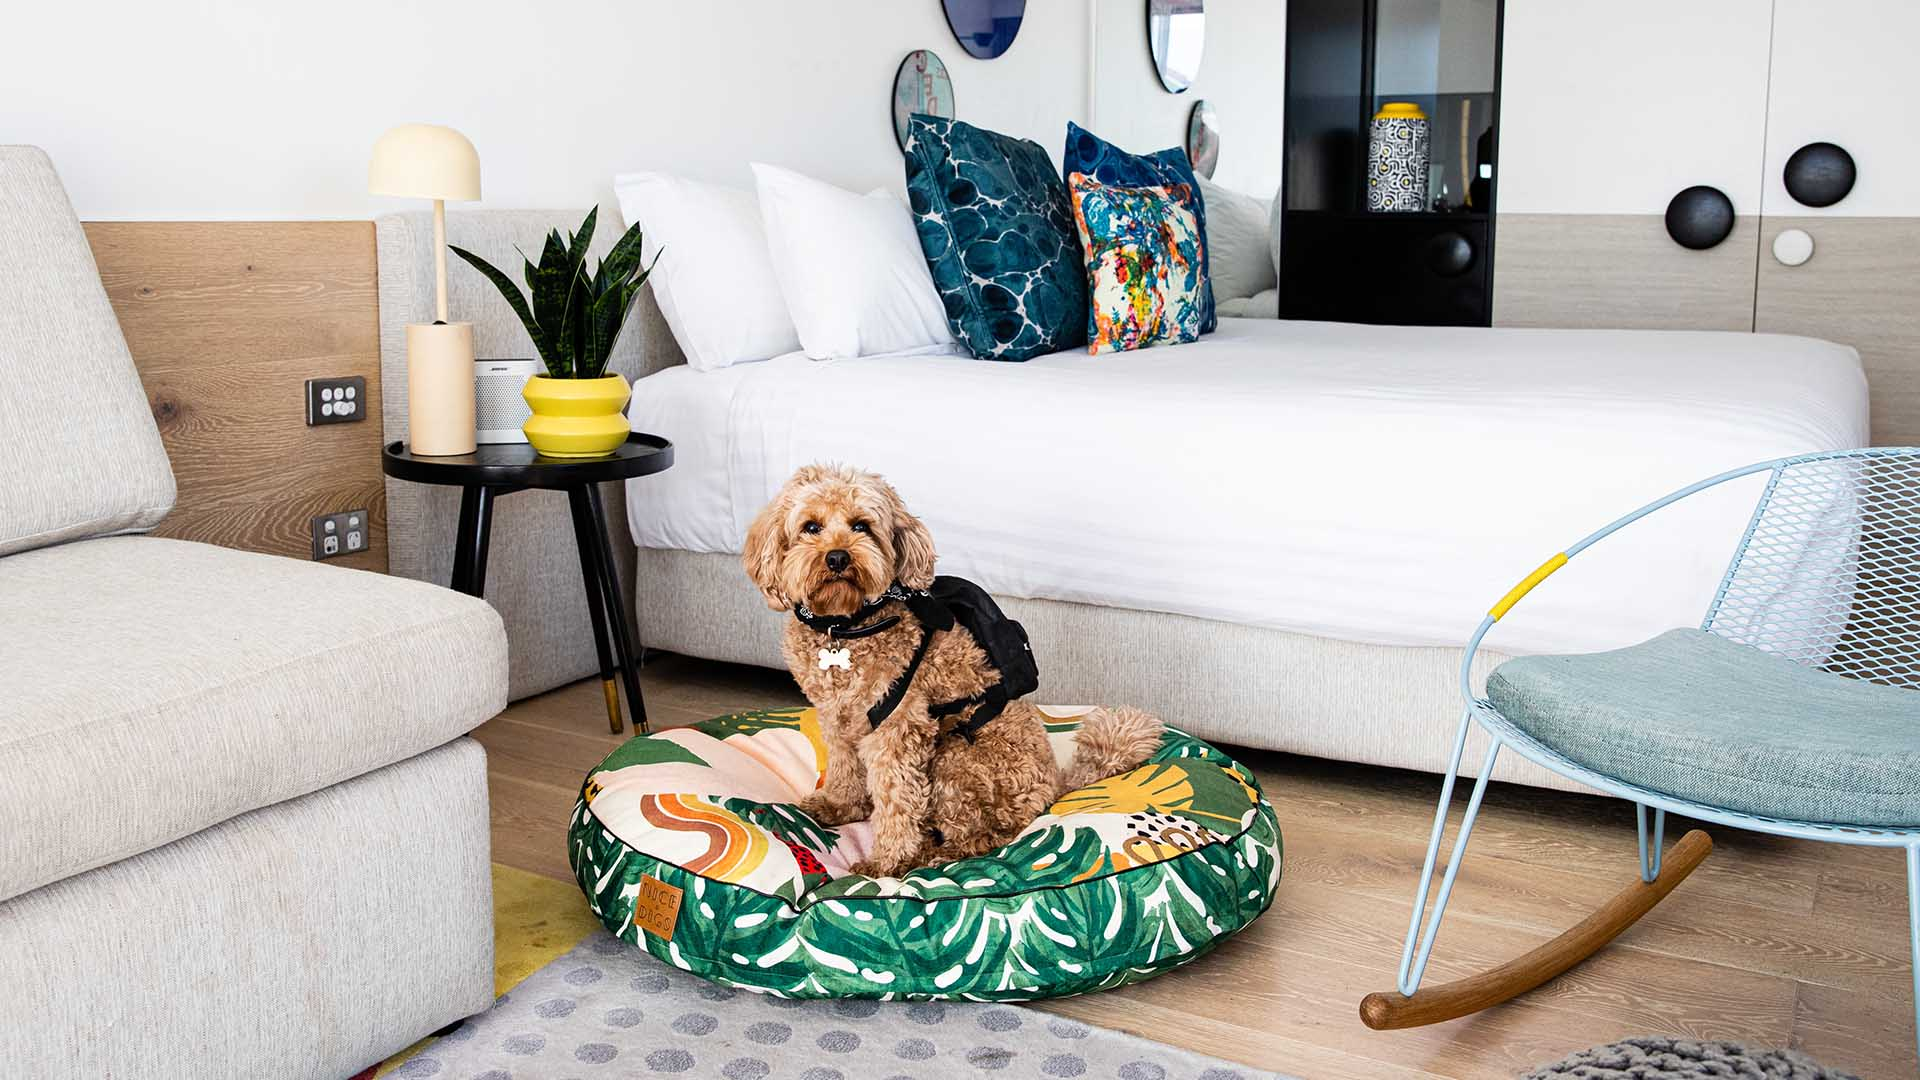 You Can Now Take Your Pooch for an Indulgent Sleepover at QT's Australian and New Zealand Hotels